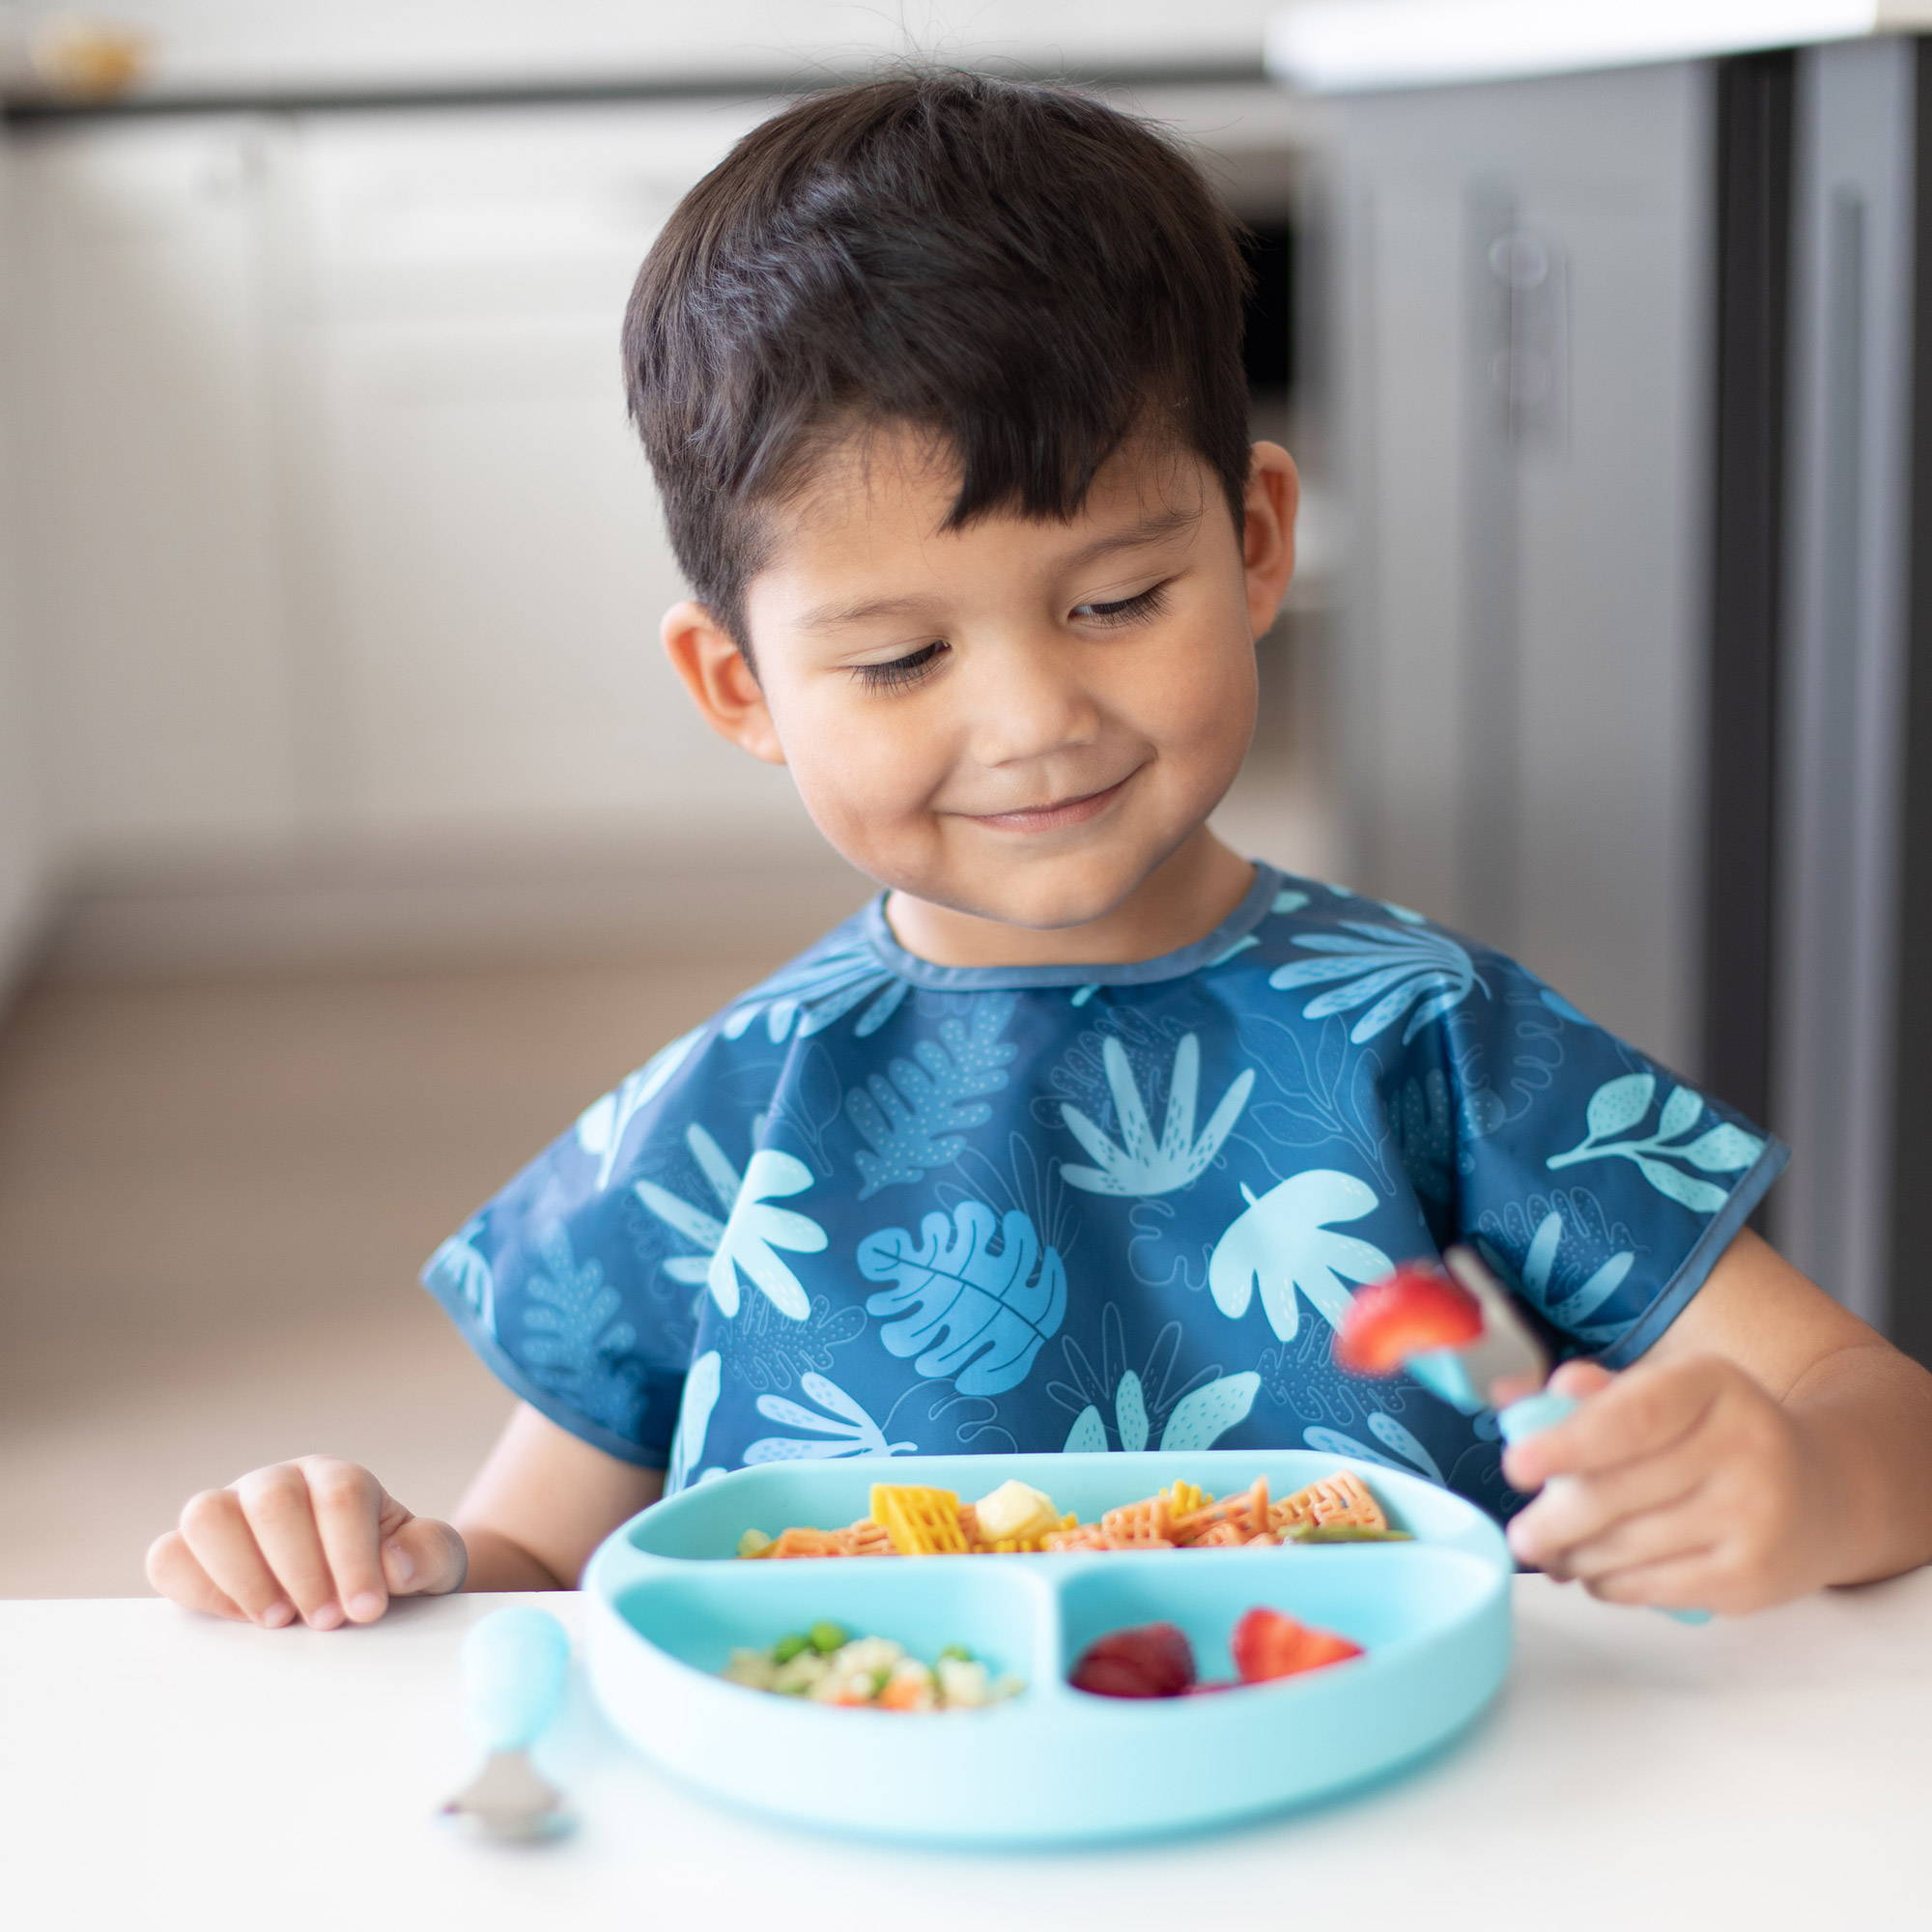 little boy eating lunch in suction plate with bib